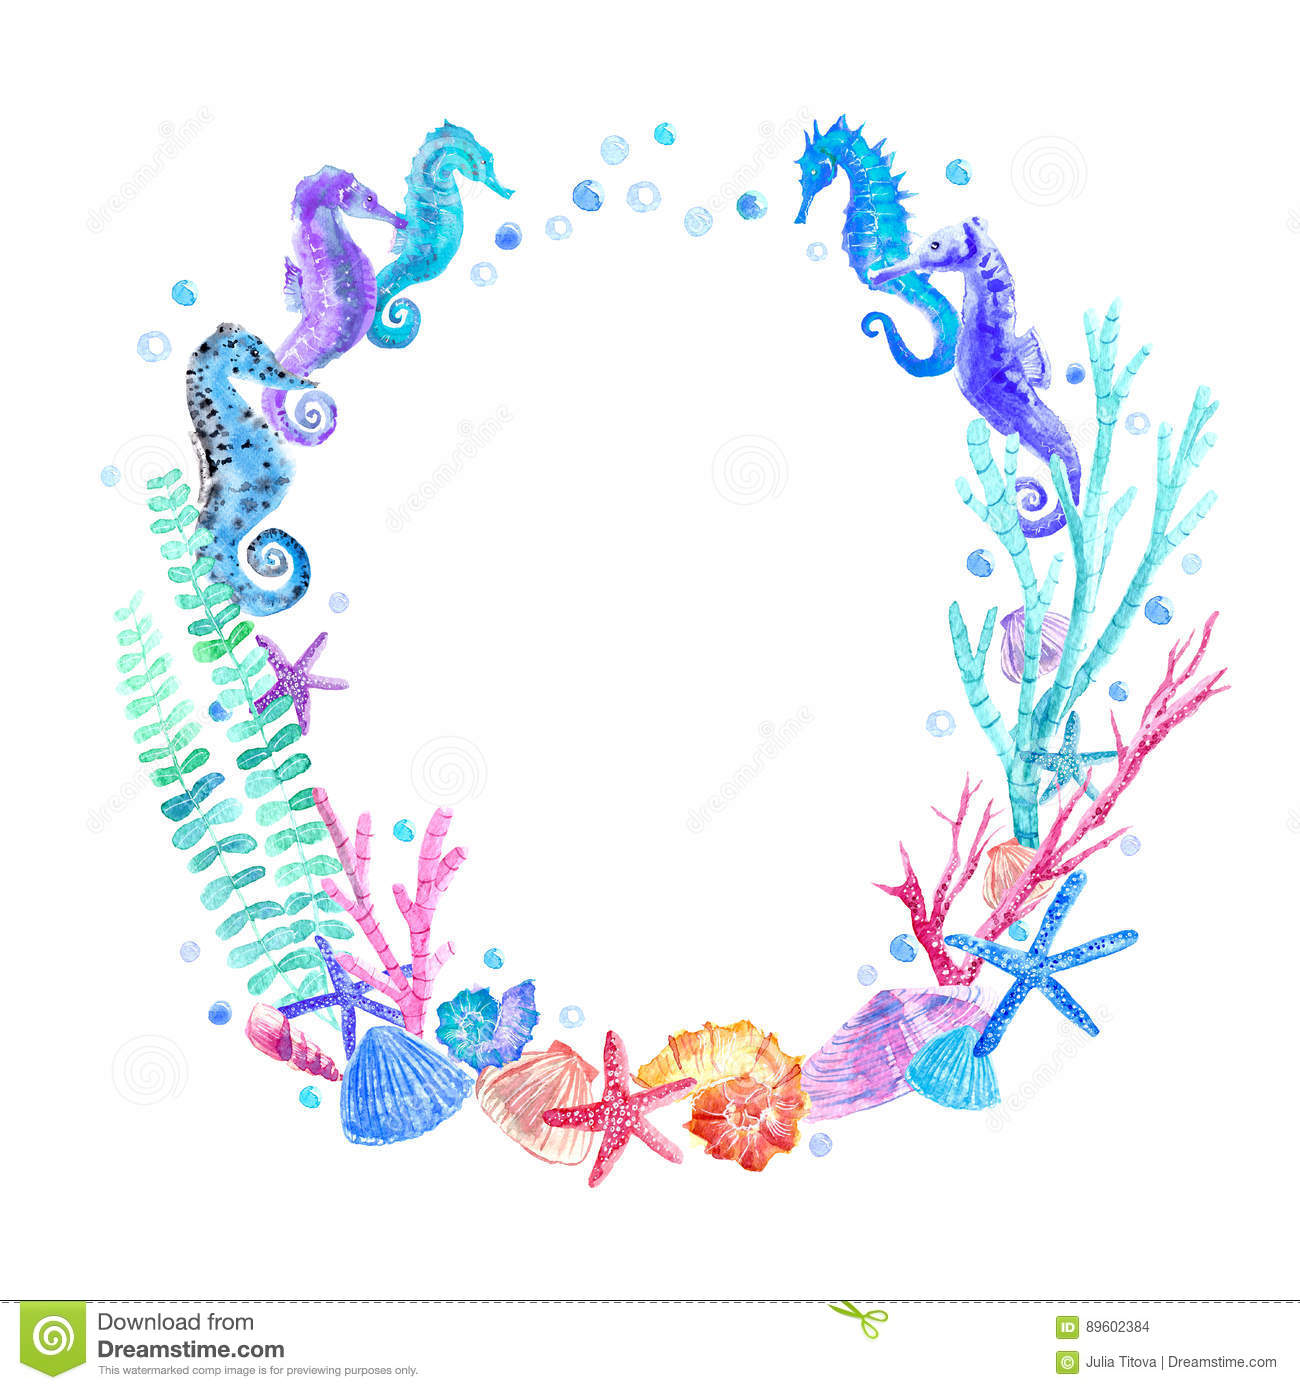 seahorse  shell  starfish  seaweed  coral and bubbles wreath stock illustration illustration seahorse clip art free images seahorse clipart freeware black and white